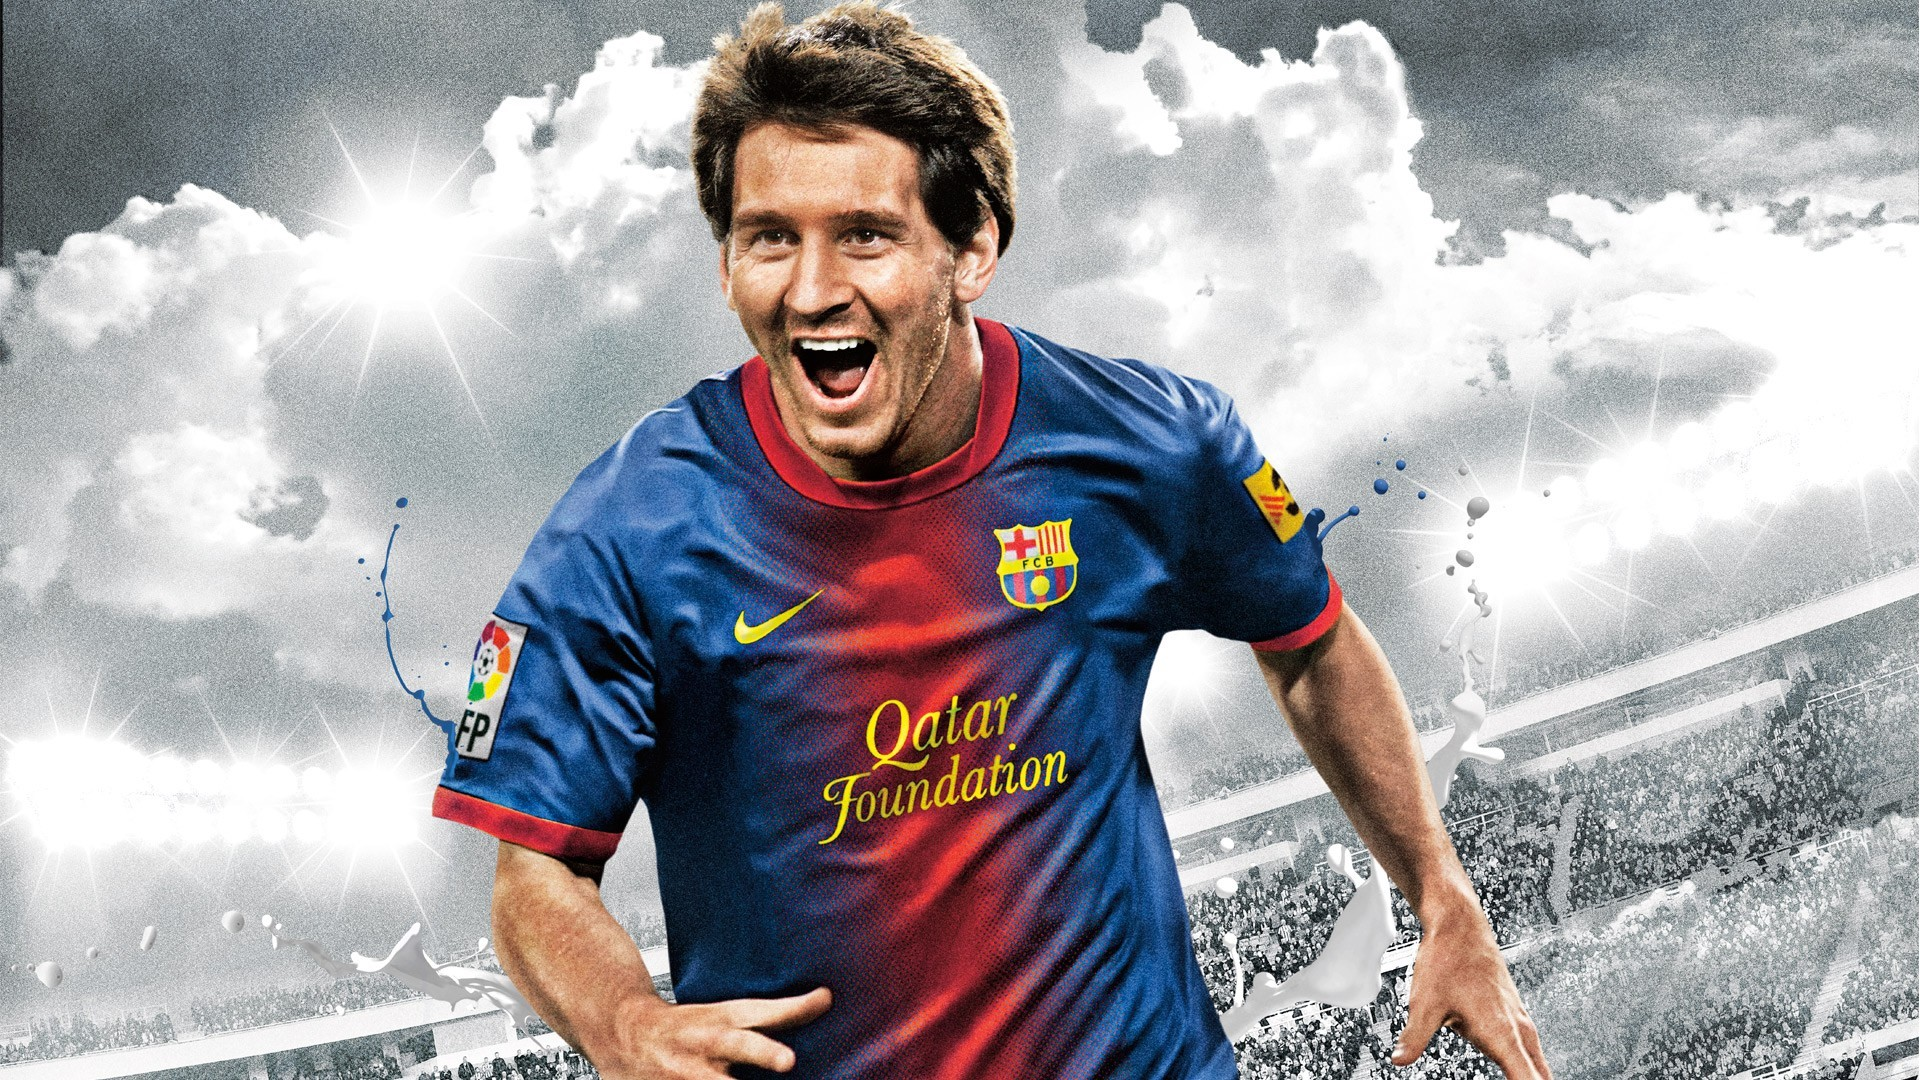 Lionel Messi Fifa Wallpaper